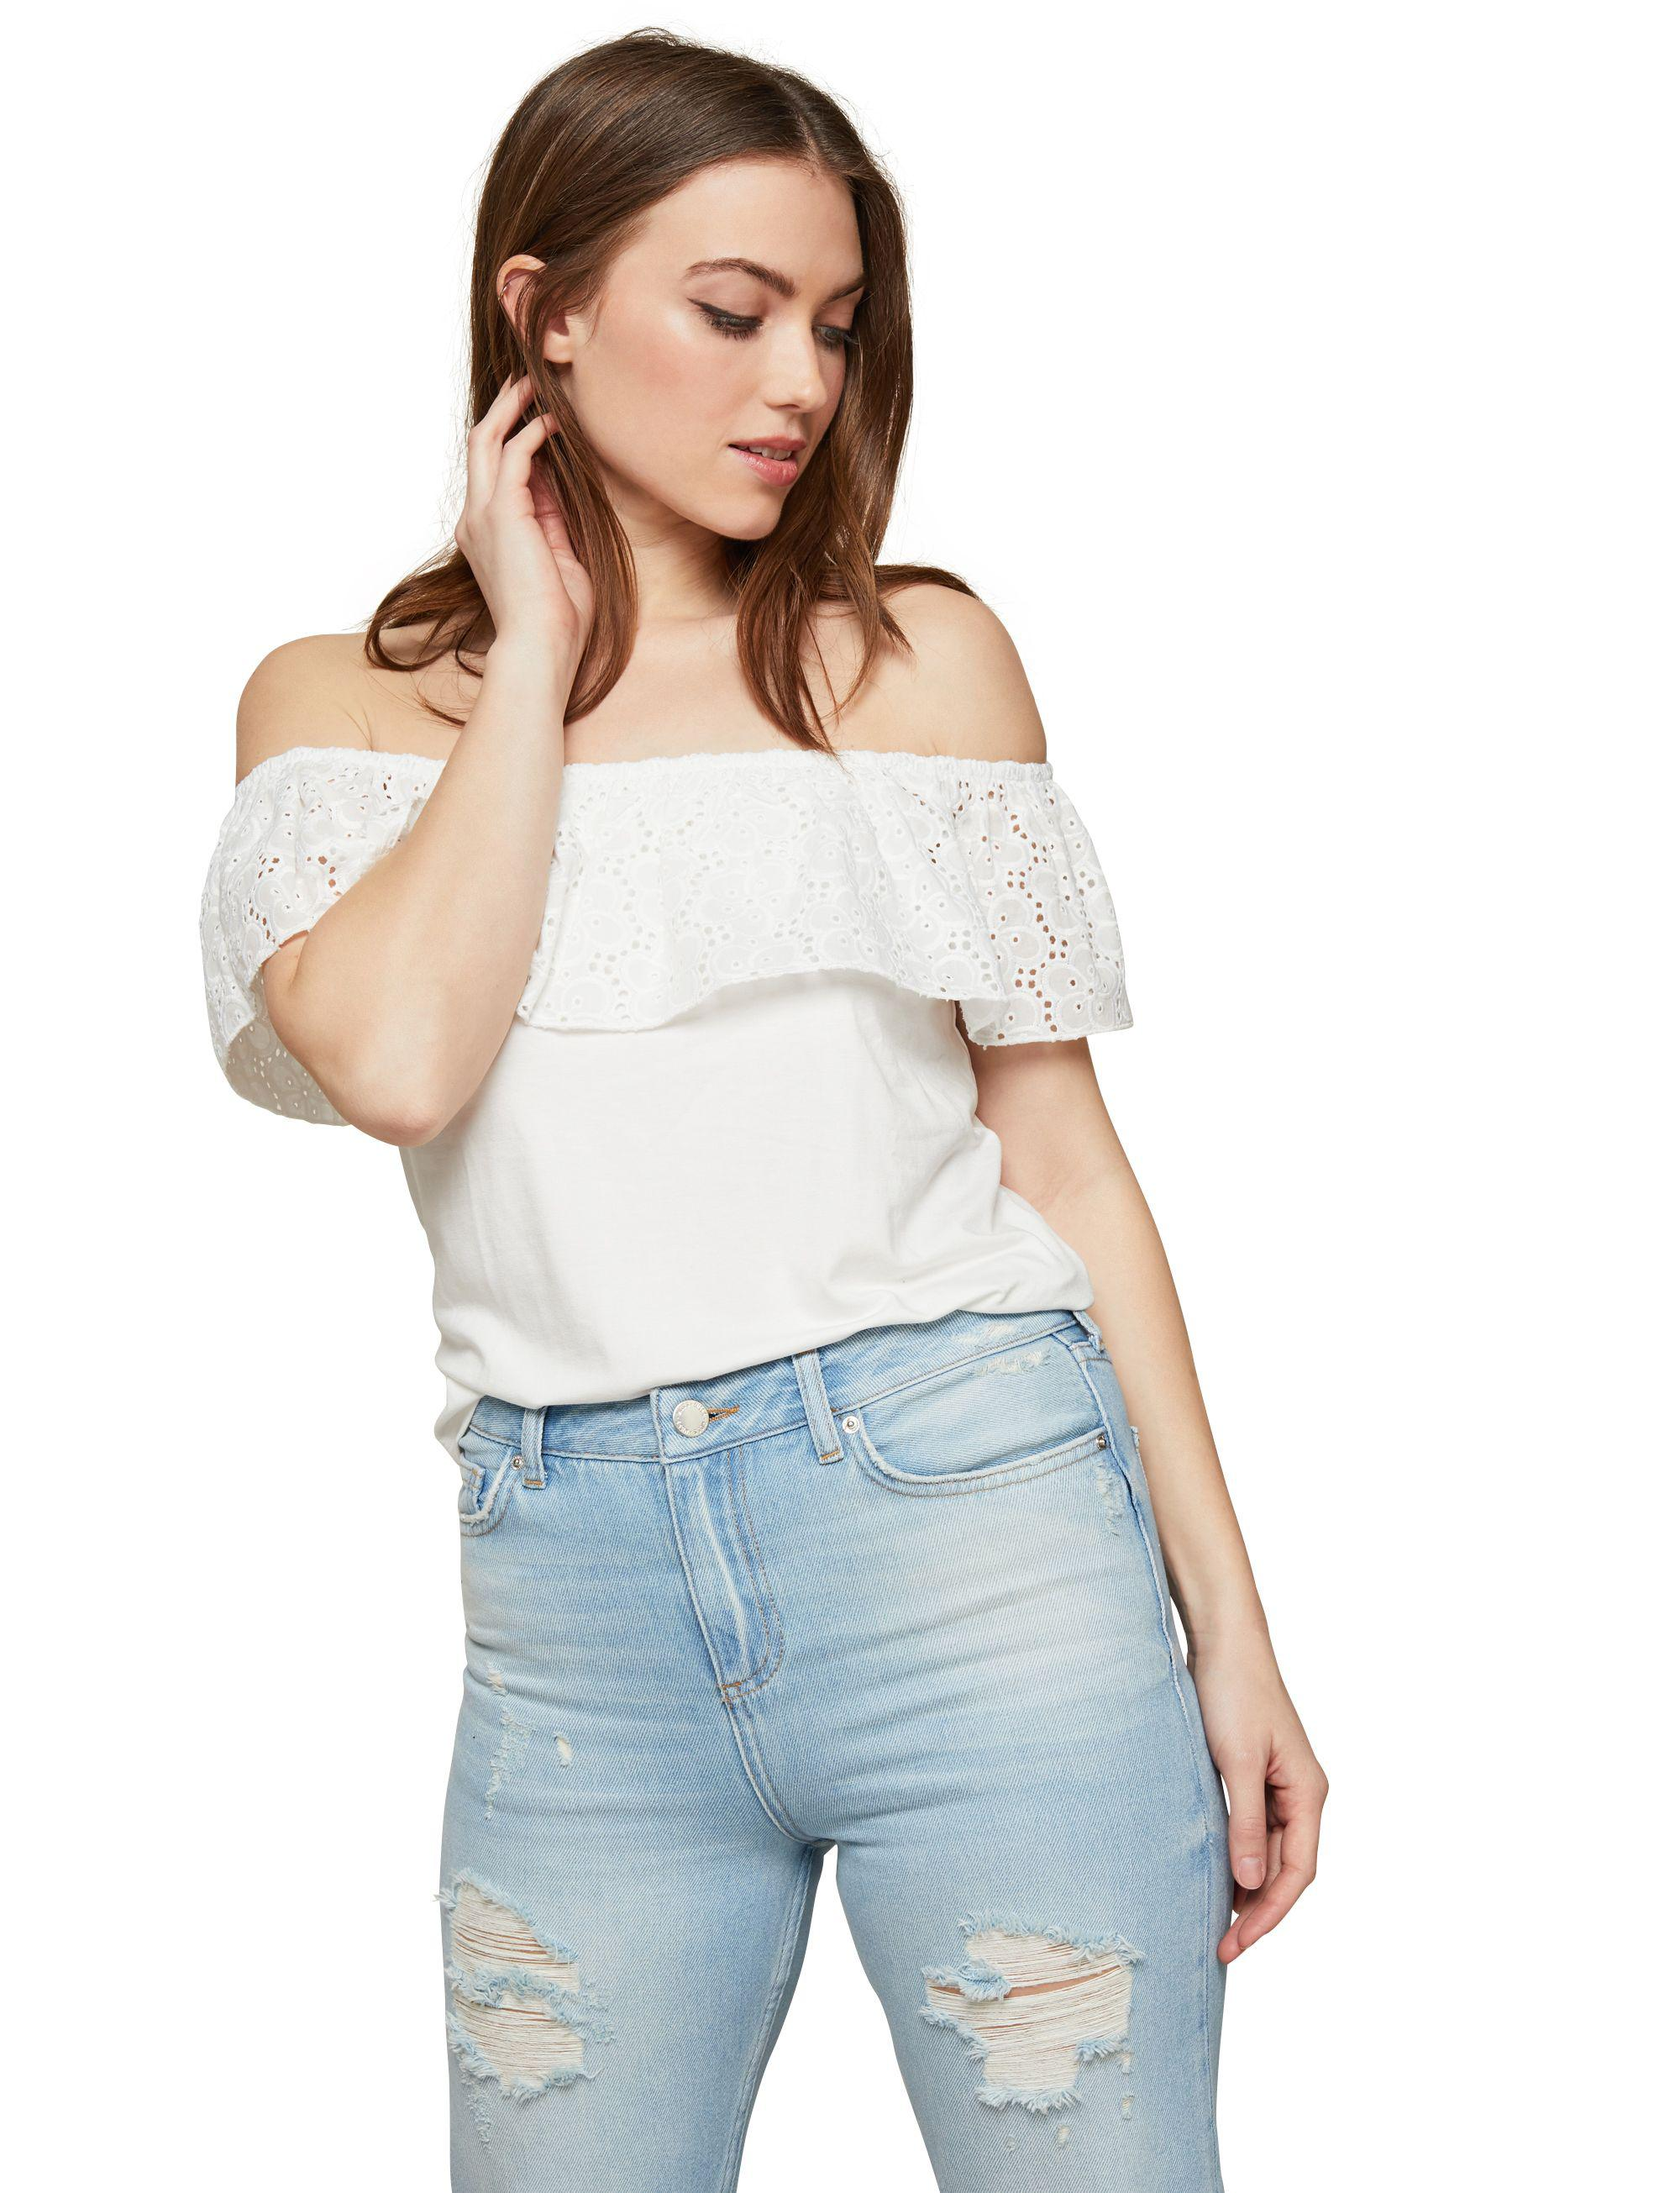 Miss Selfridge White Broderie Bardot Top in White - Lyst a31c43d08